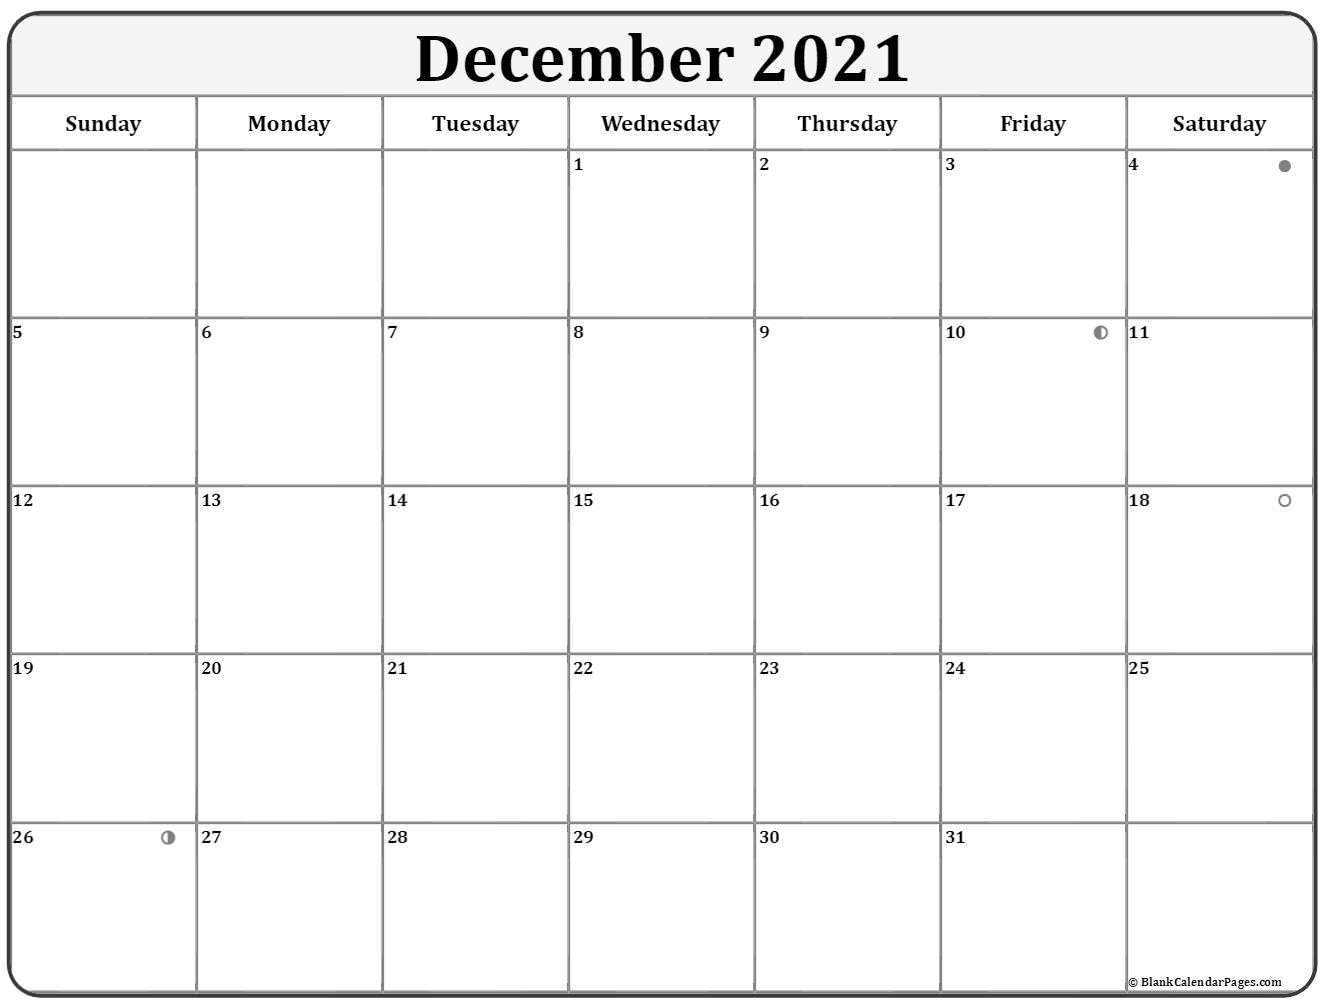 December 2021 moon phase calendar. lunar calendar